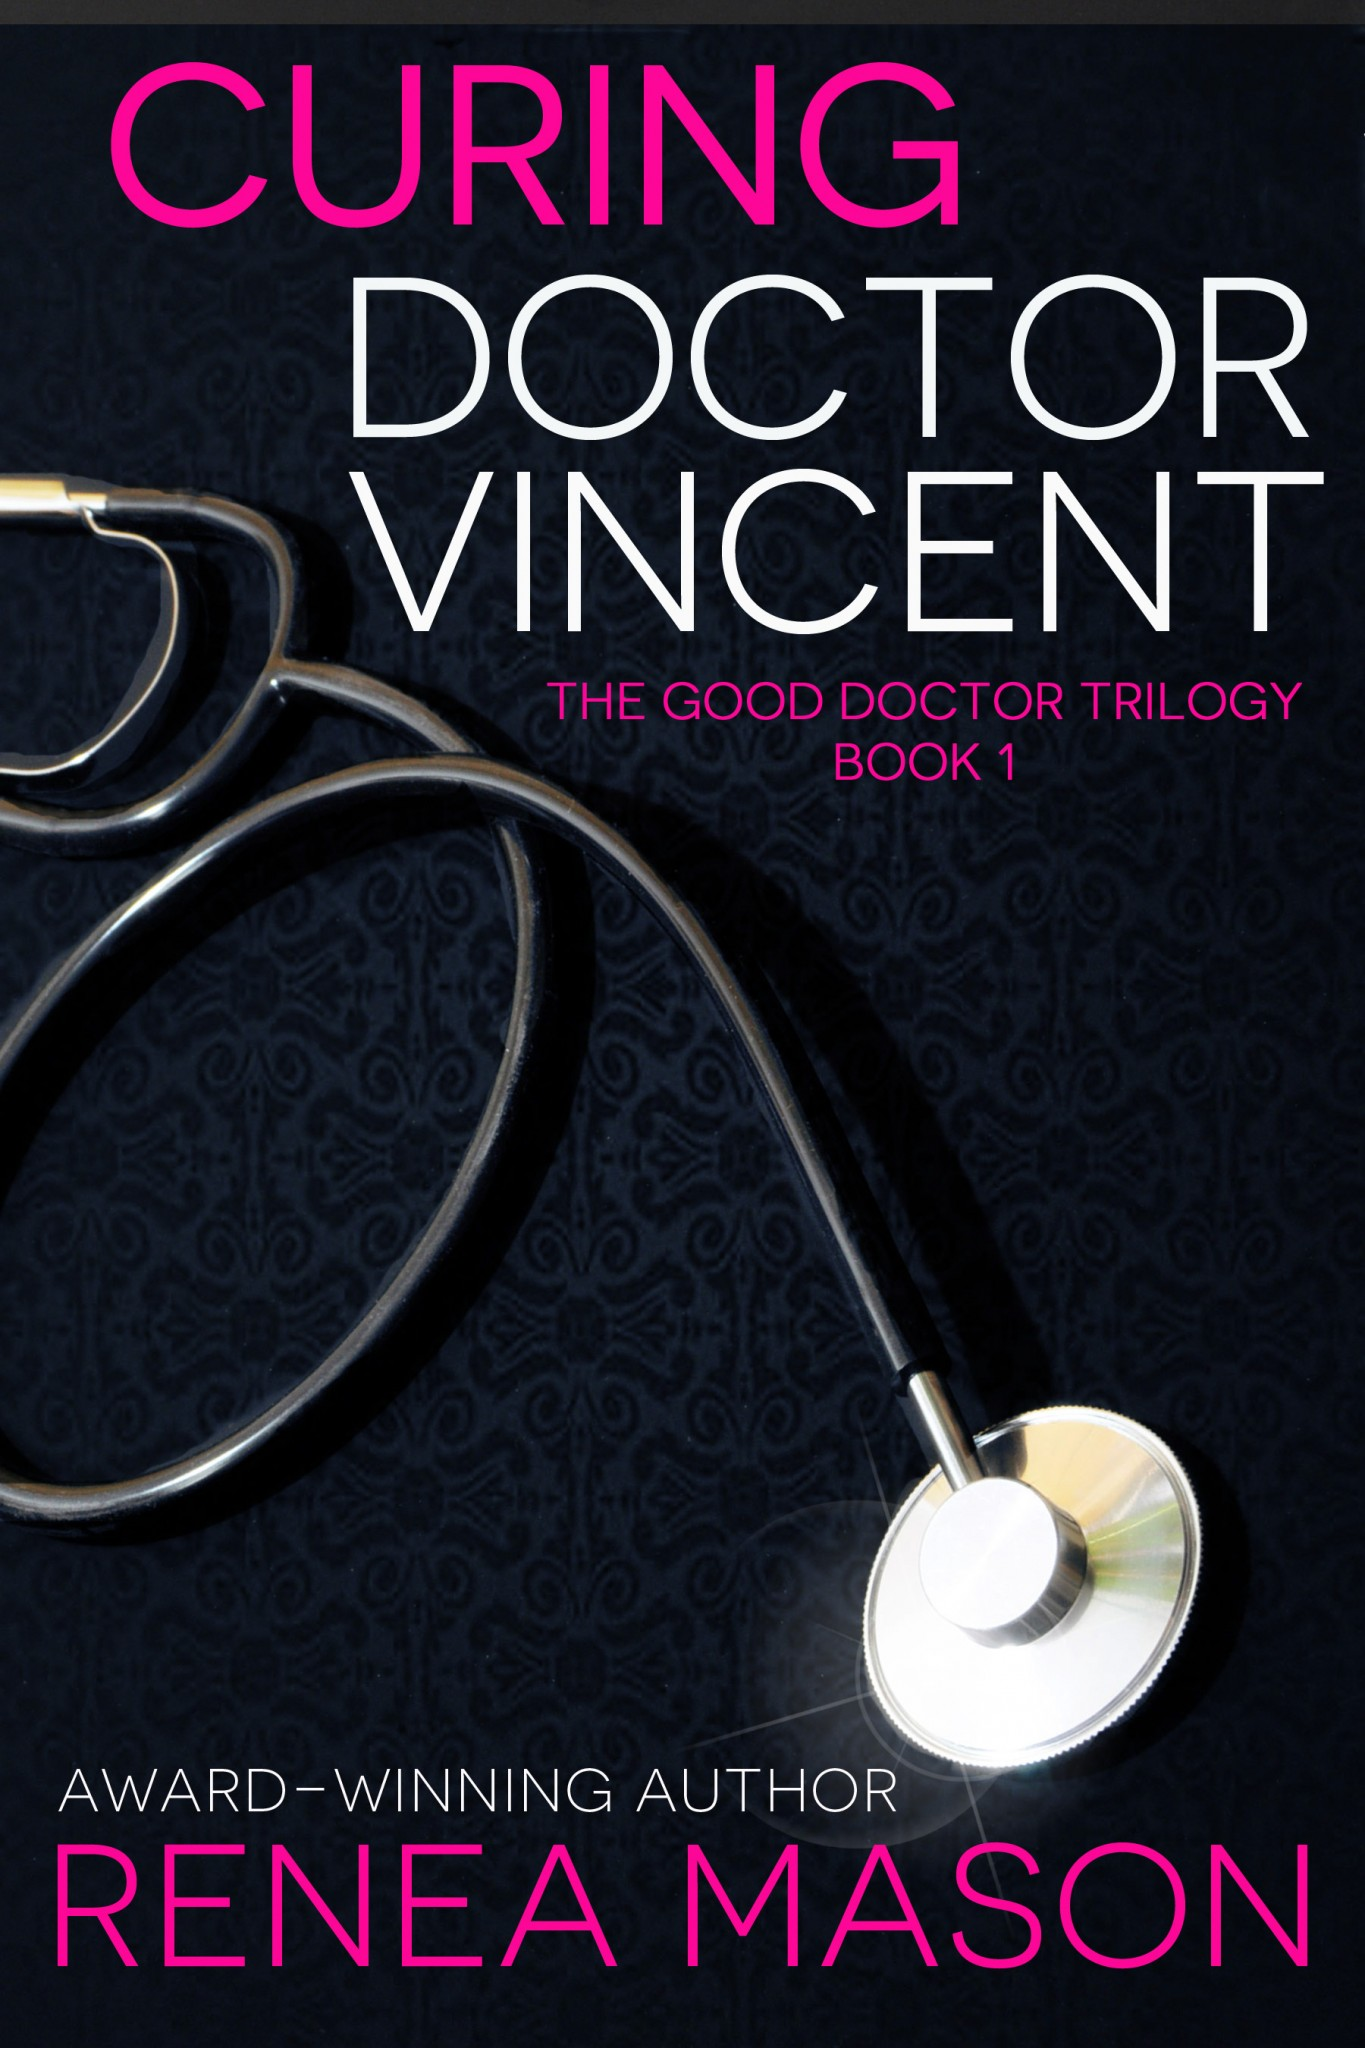 Curing Doctor Vincent by Renea Mason